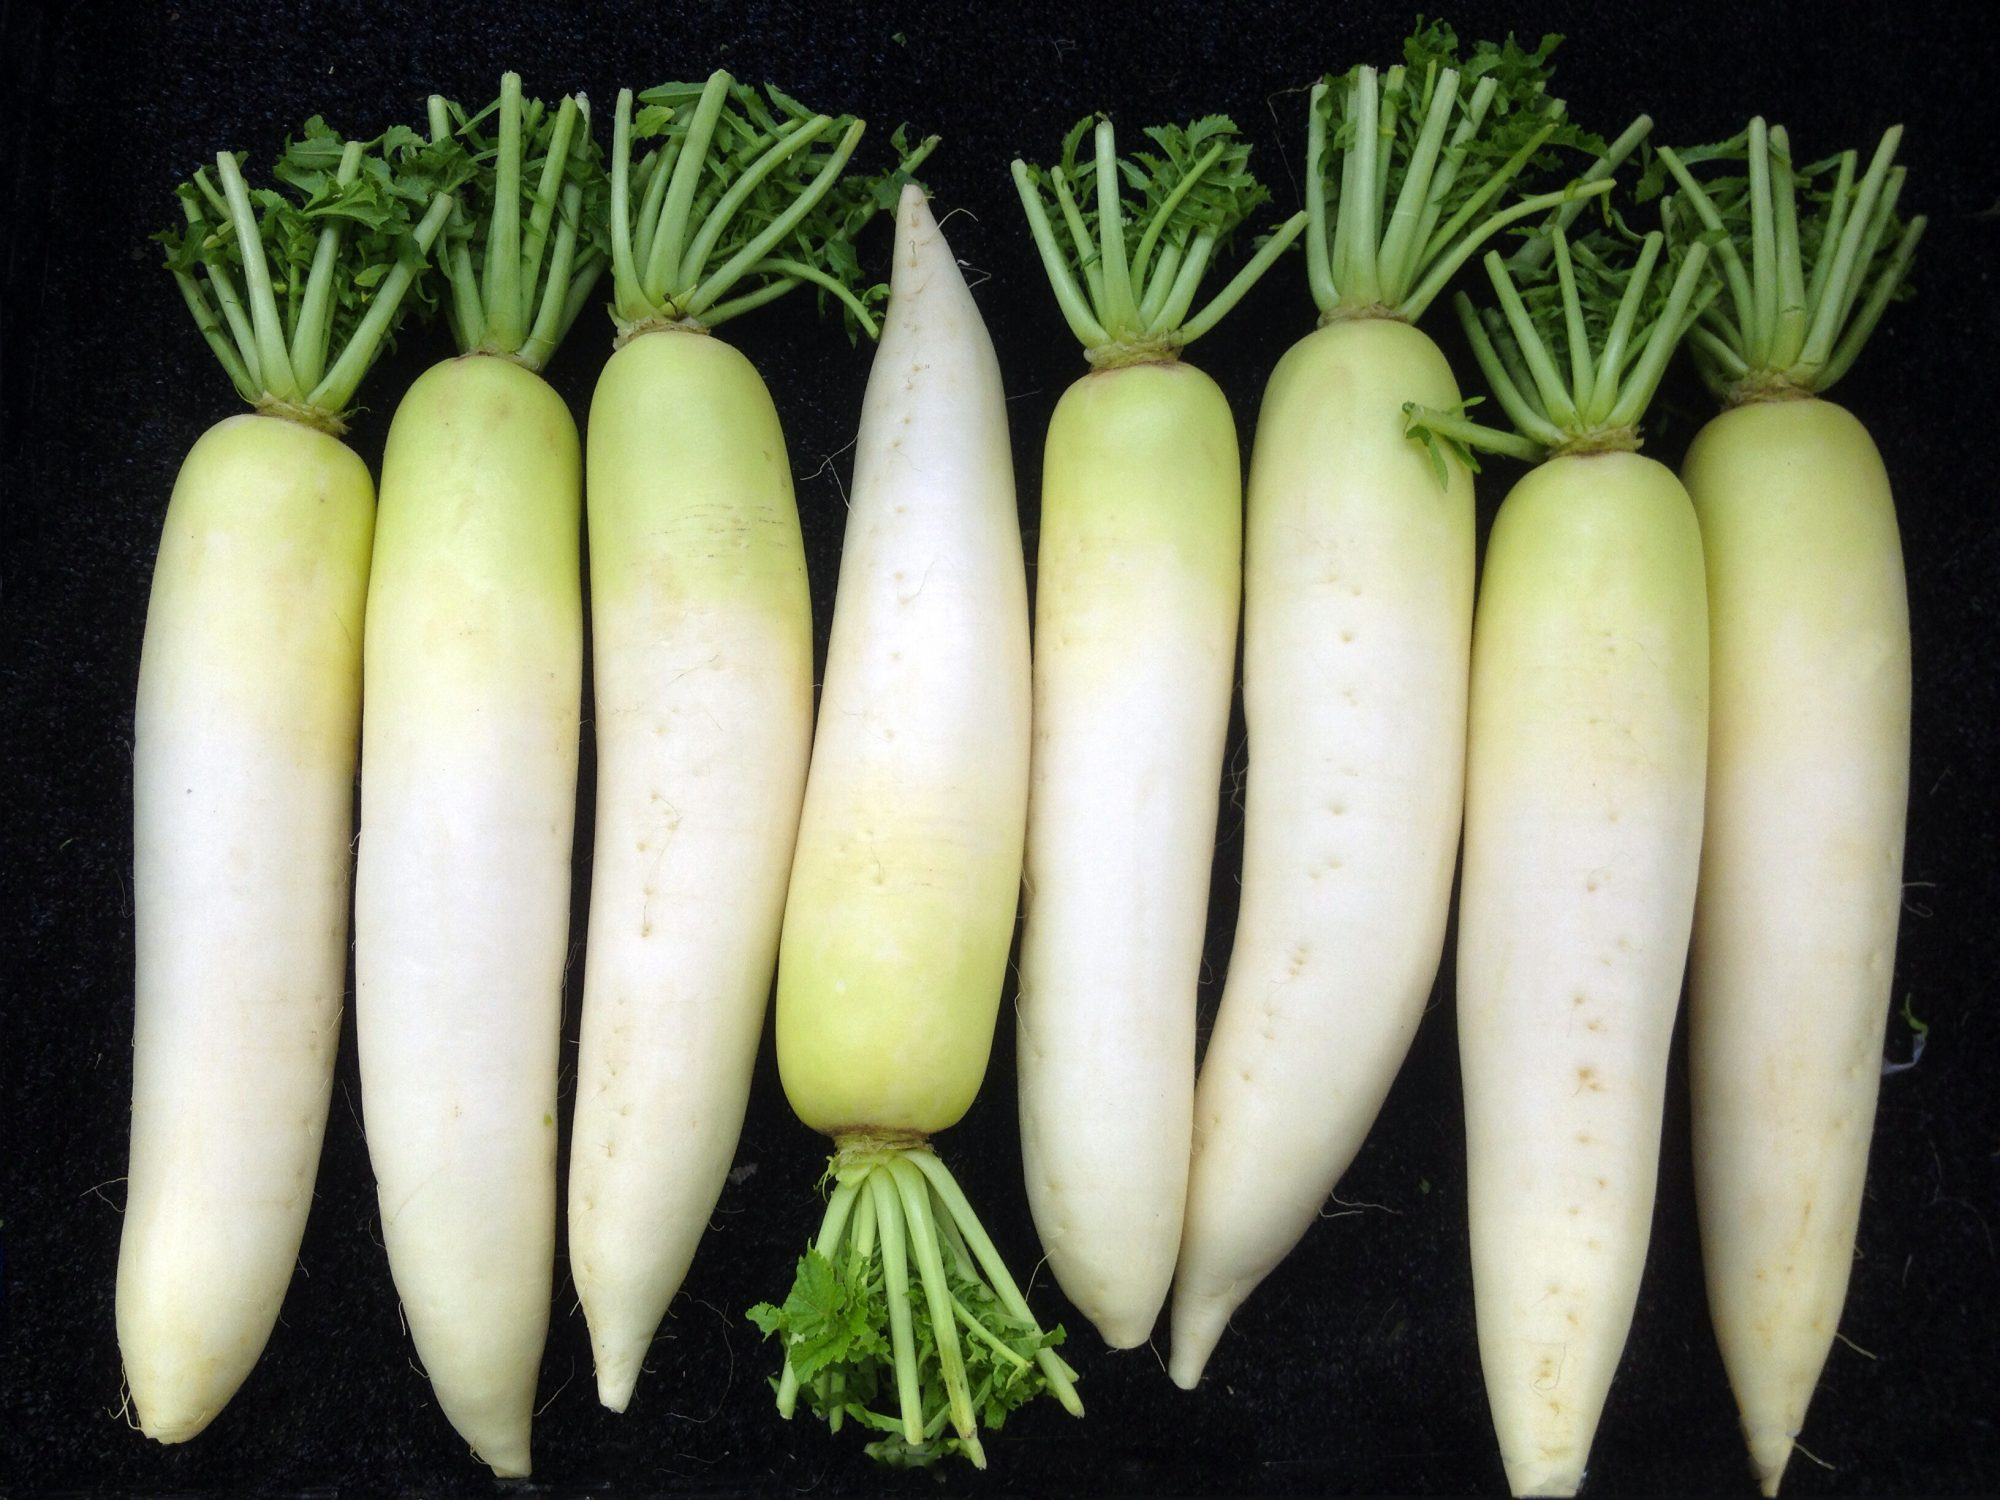 getty-daikon-radish-image